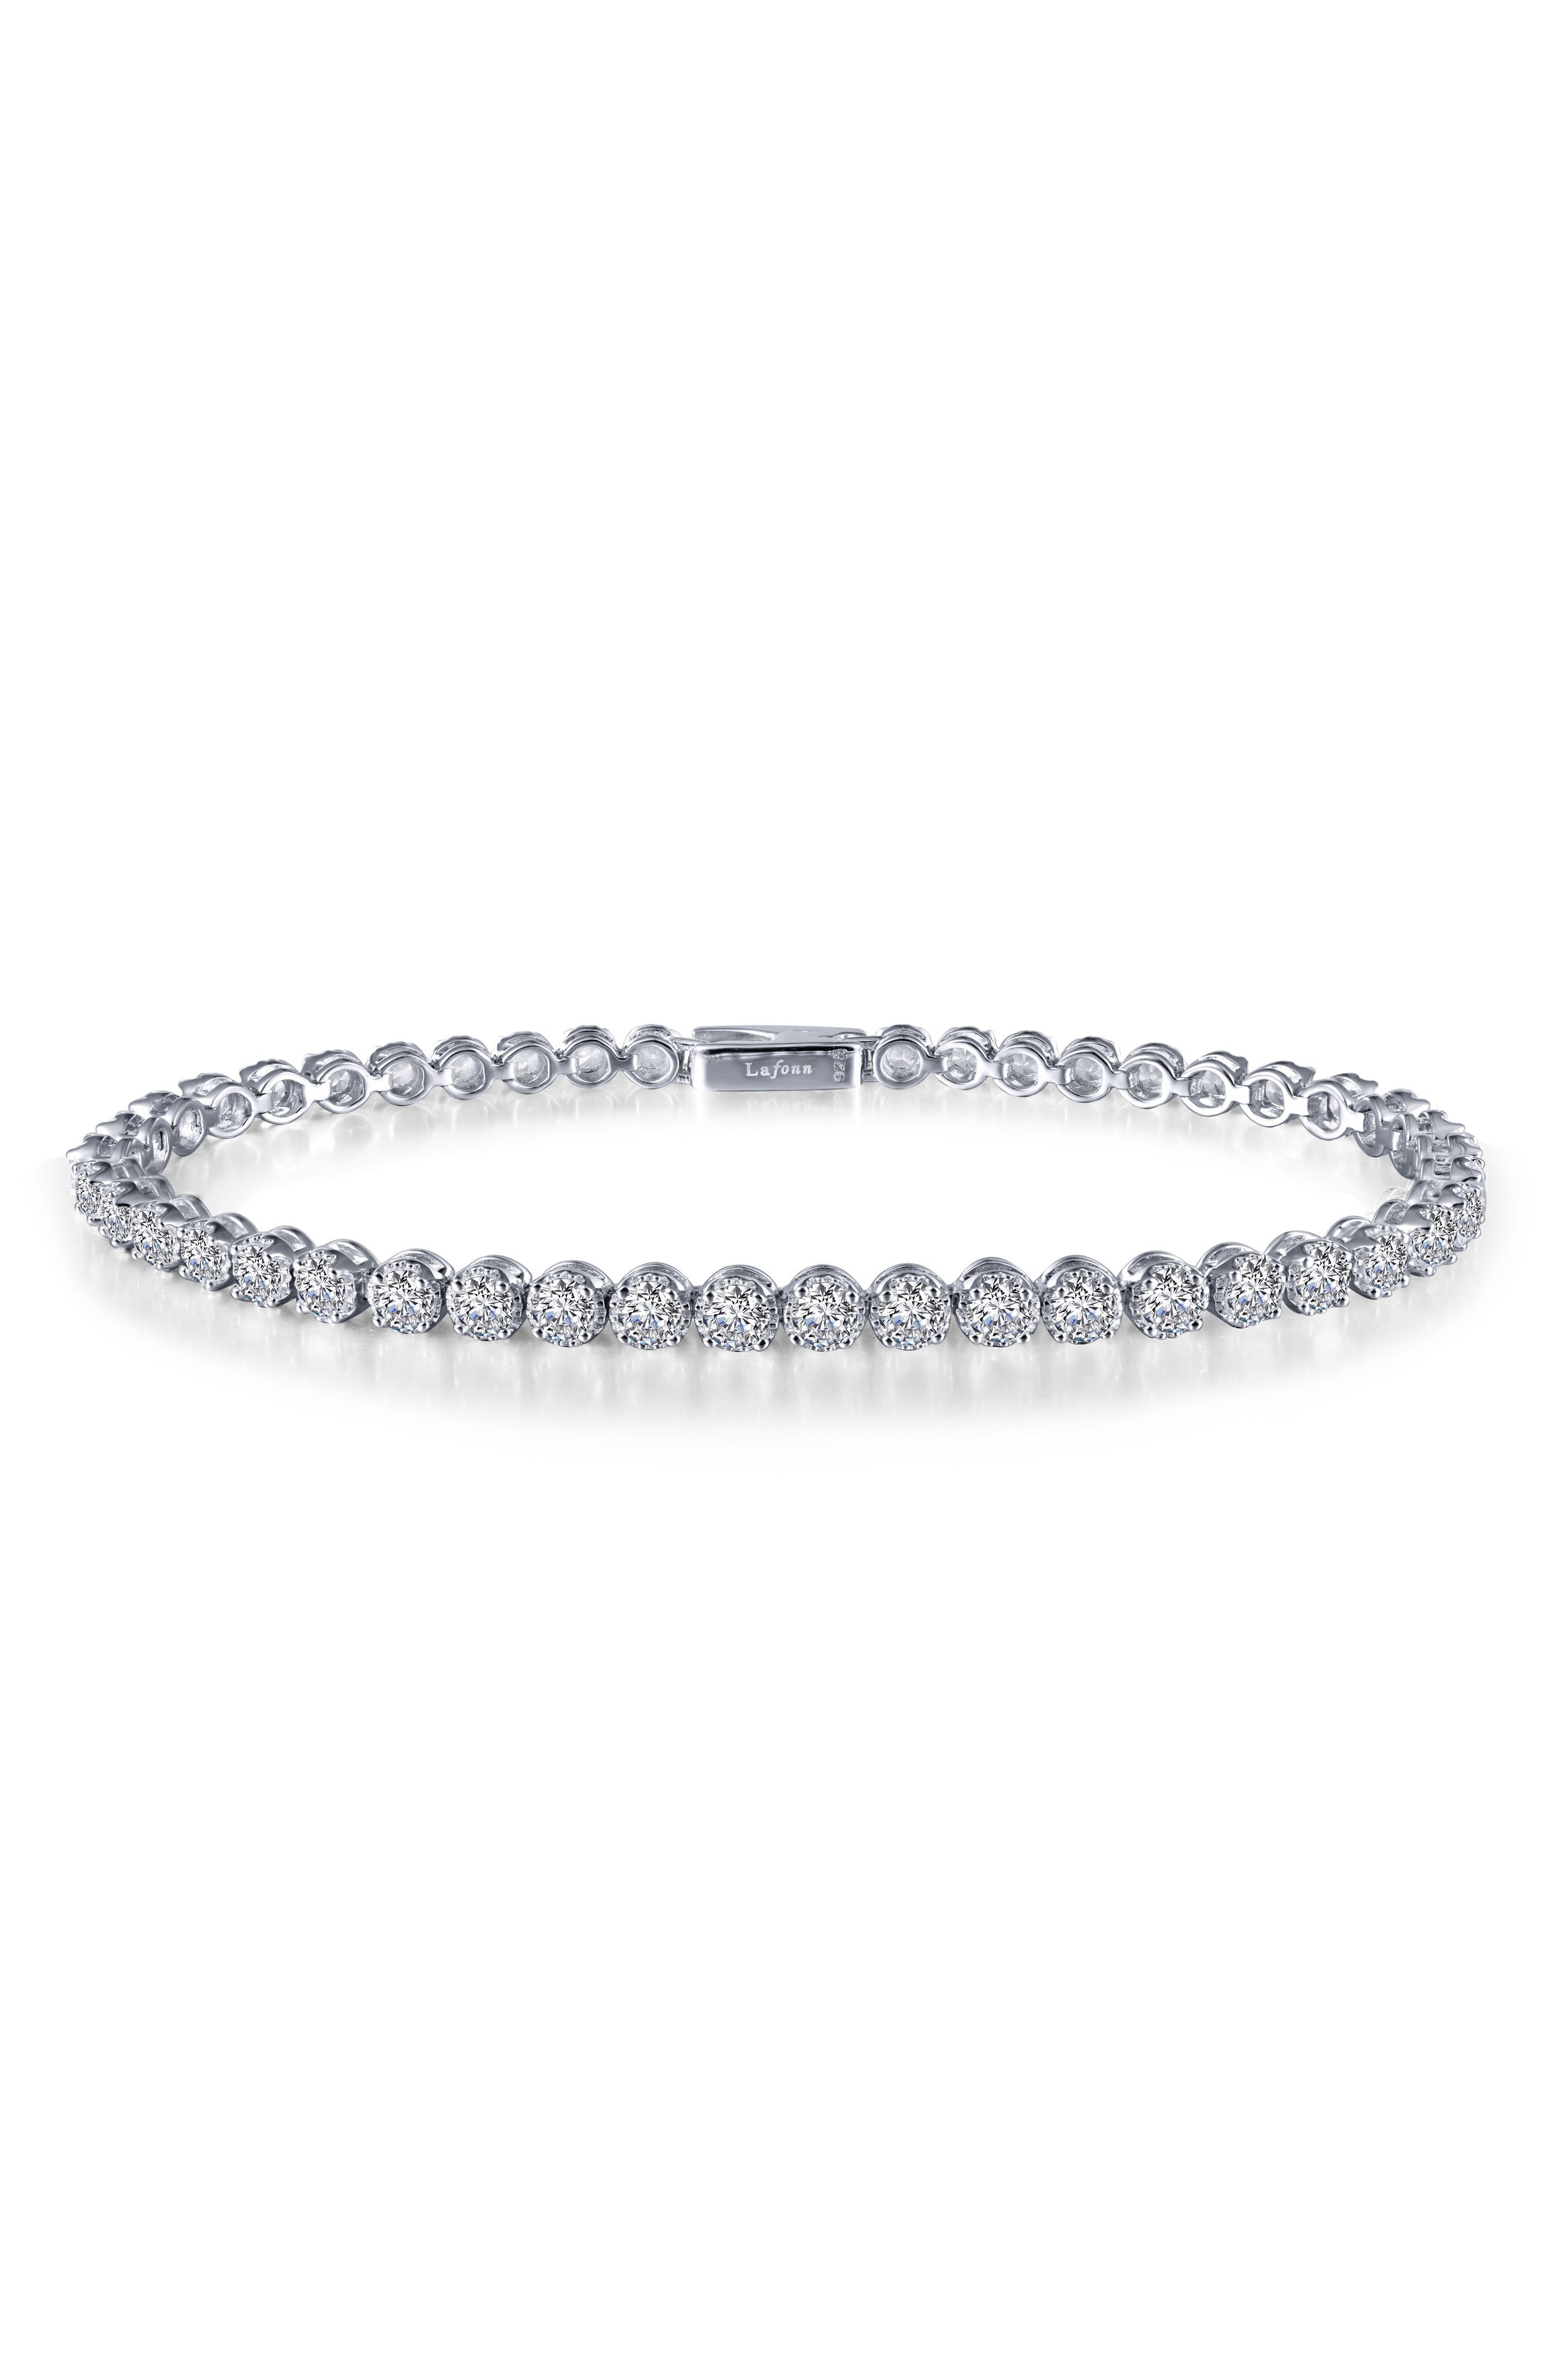 Simulated Diamond Tennis Bracelet,                         Main,                         color, SILVER/ CLEAR